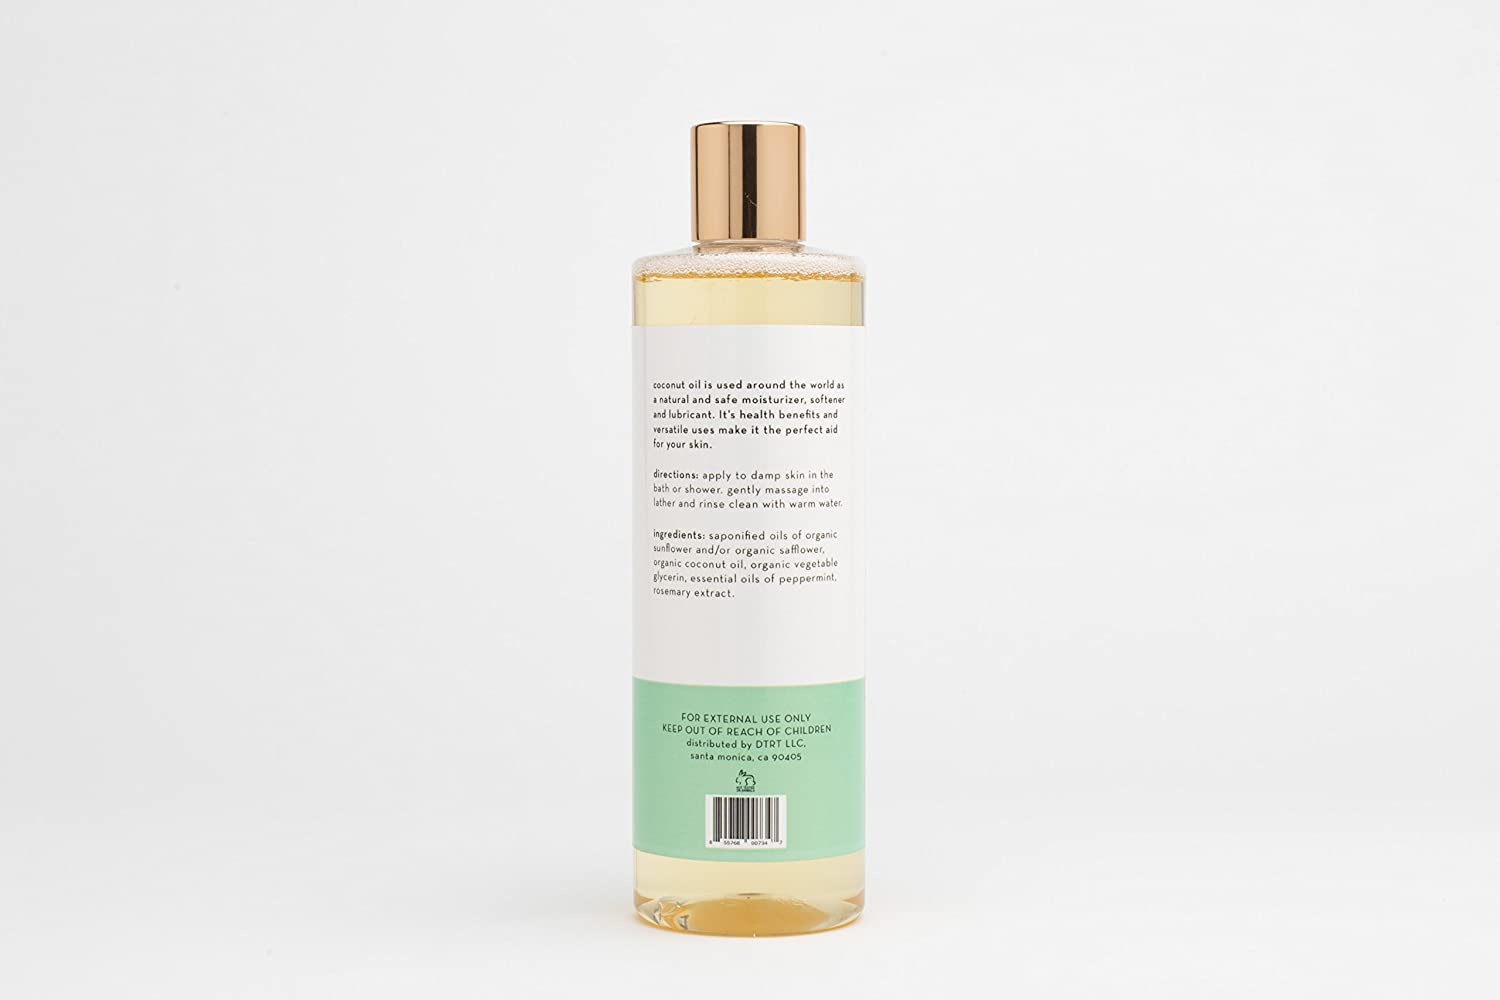 NDC Beauty: Organic Coconut Oil Castile Soap Body Wash by